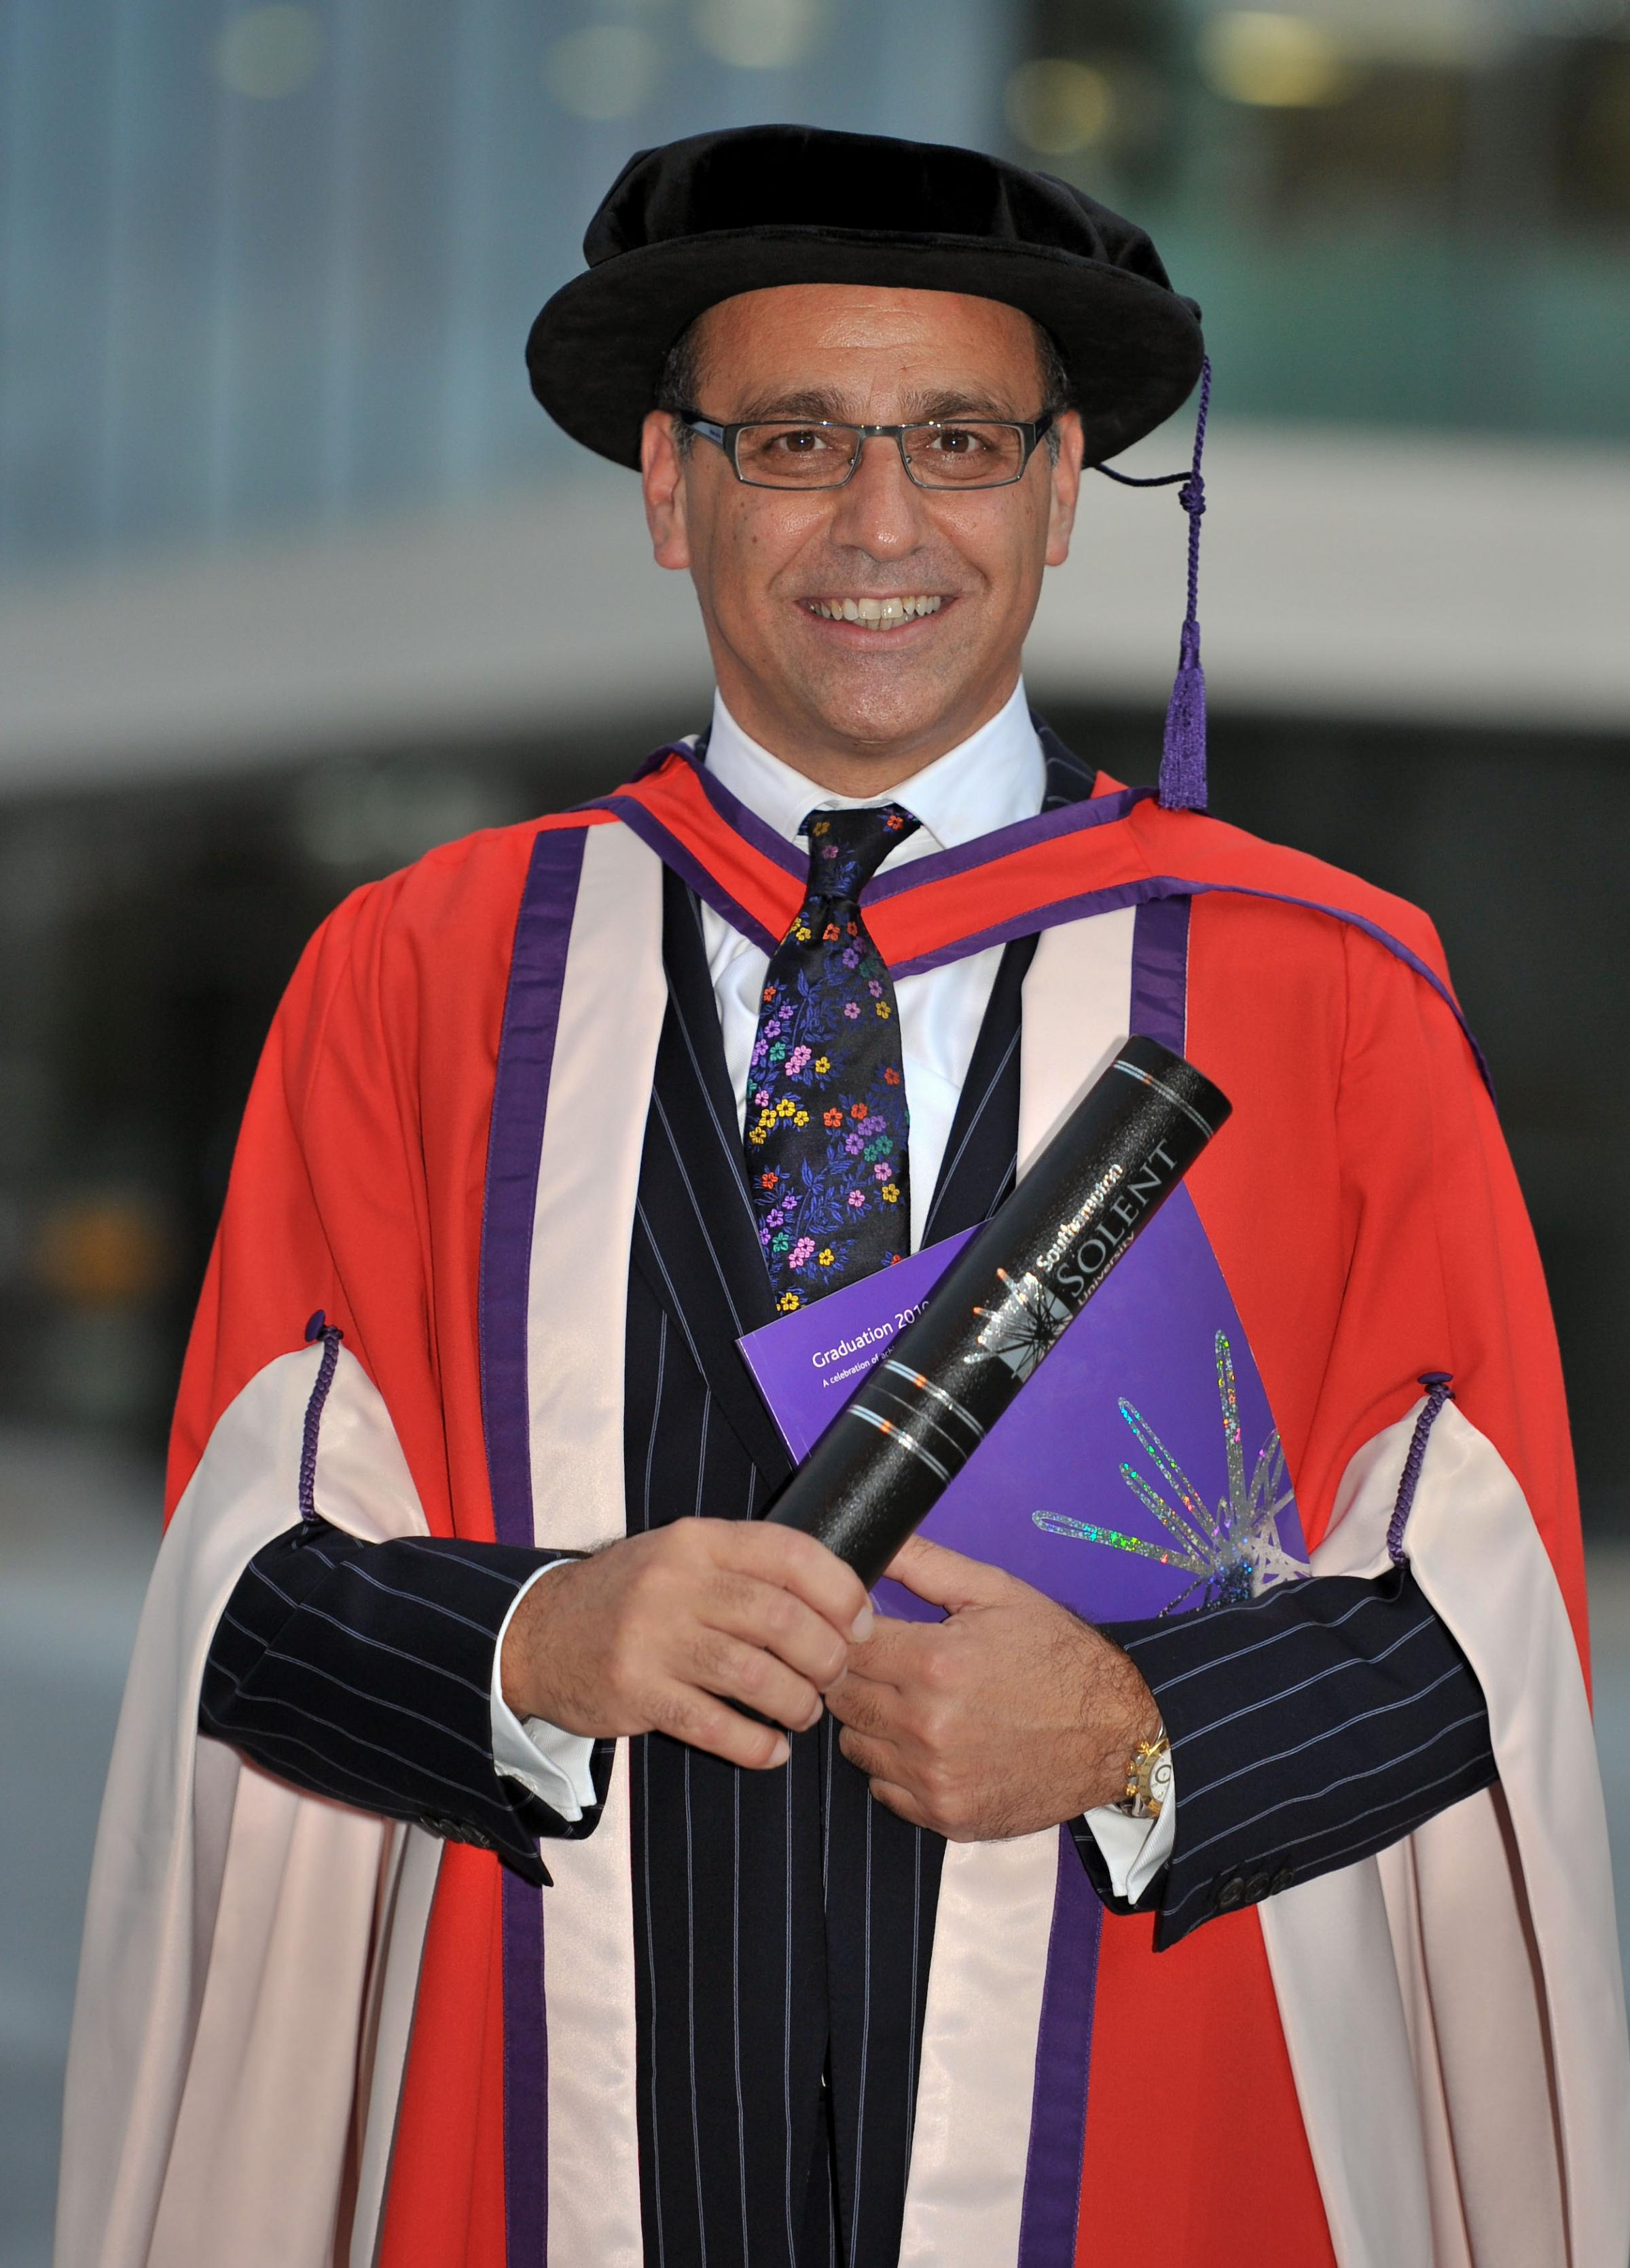 Entrepreneur and former Dragons' Den star Theo Paphitis has been named as the new chancellor of Solent University